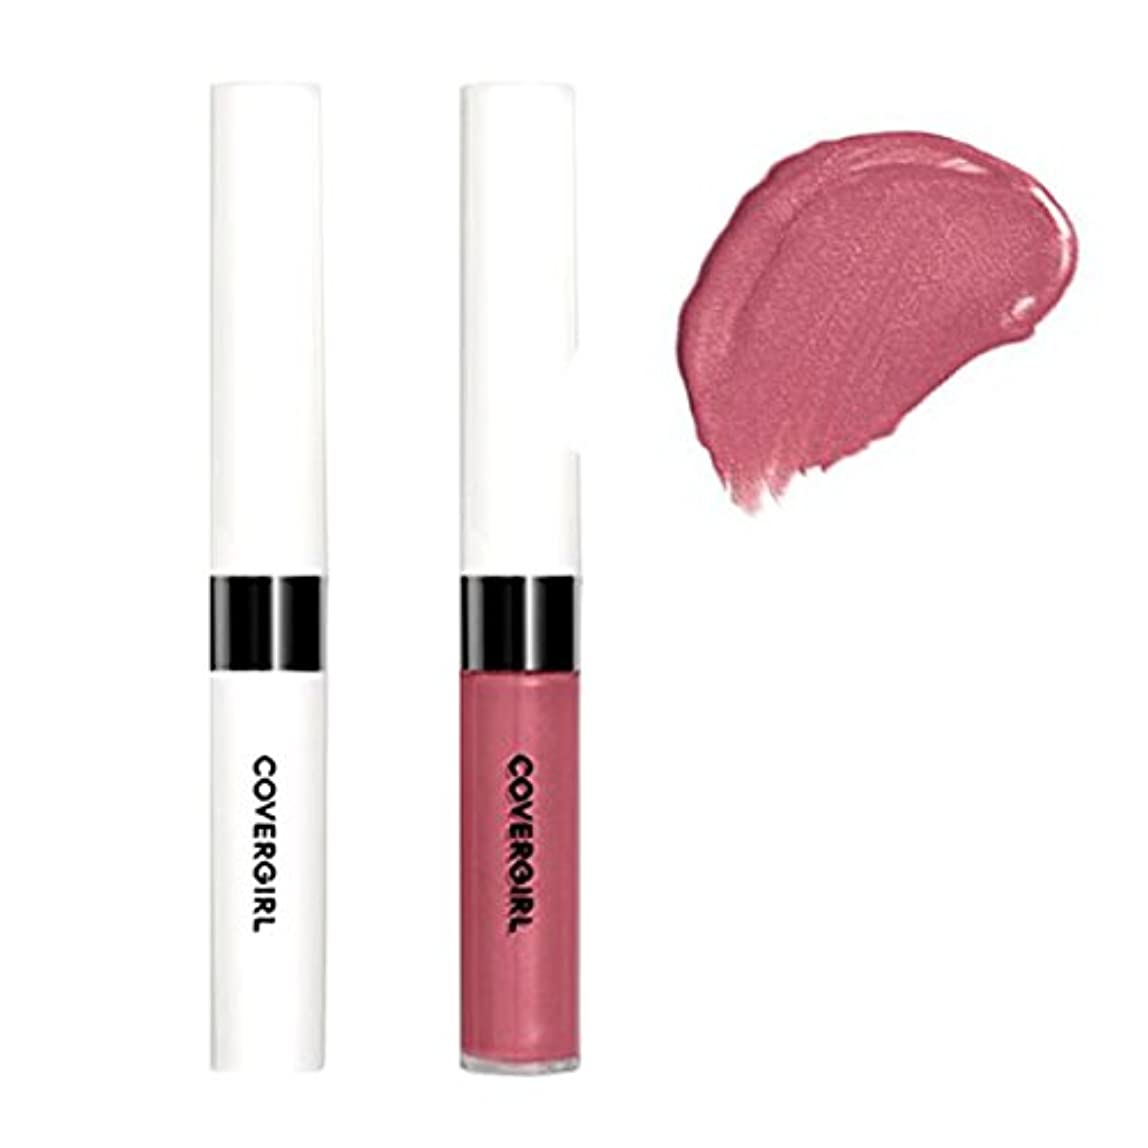 COVERGIRL Outlast All-Day Moisturizing Lip Color, 555 Blossom Berry (Packaging may vary) [海外直送品]